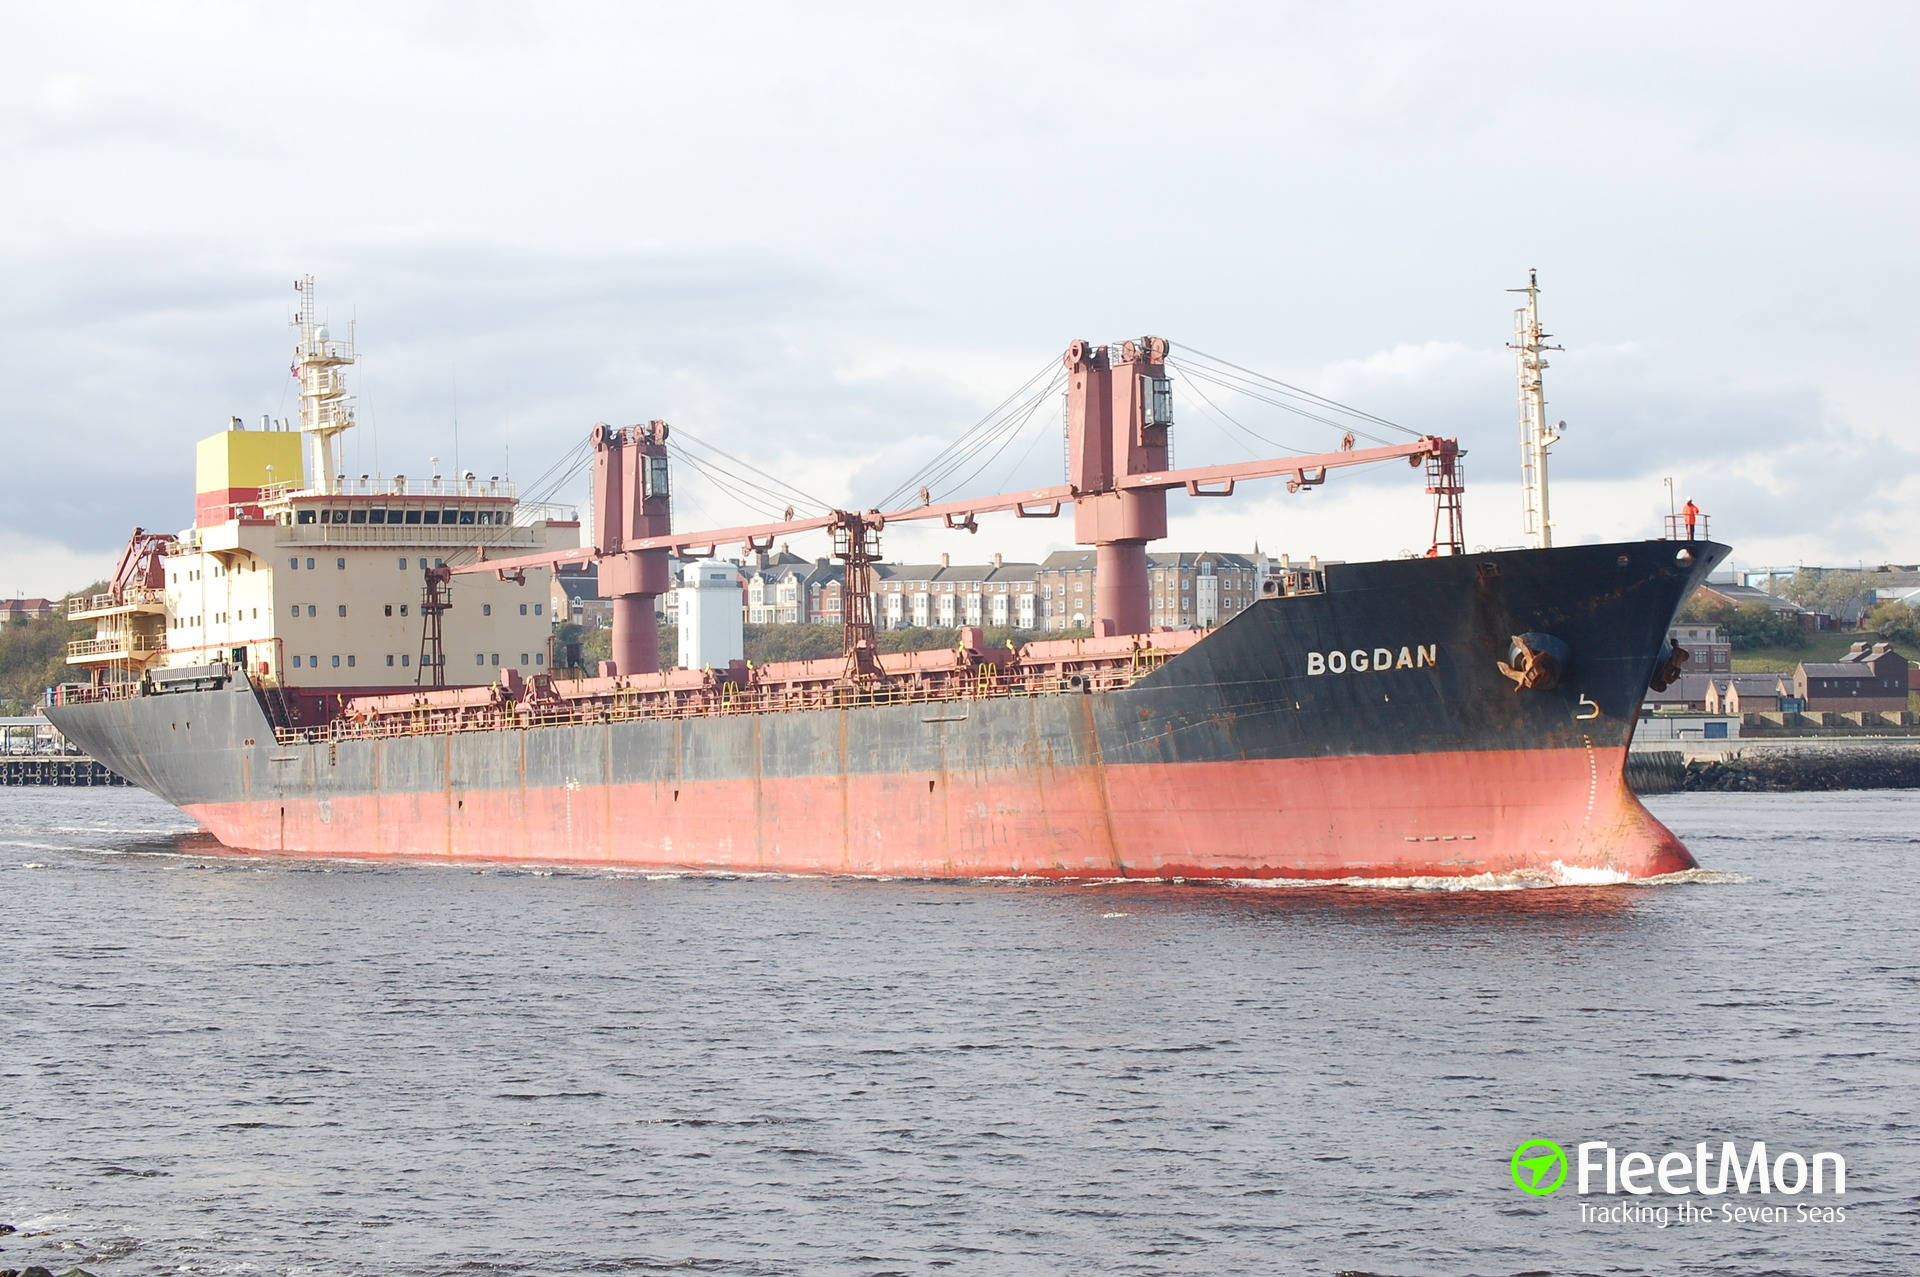 Bulk carrier Bogdan struck the wall and blocked the channel, Iroquois Lock